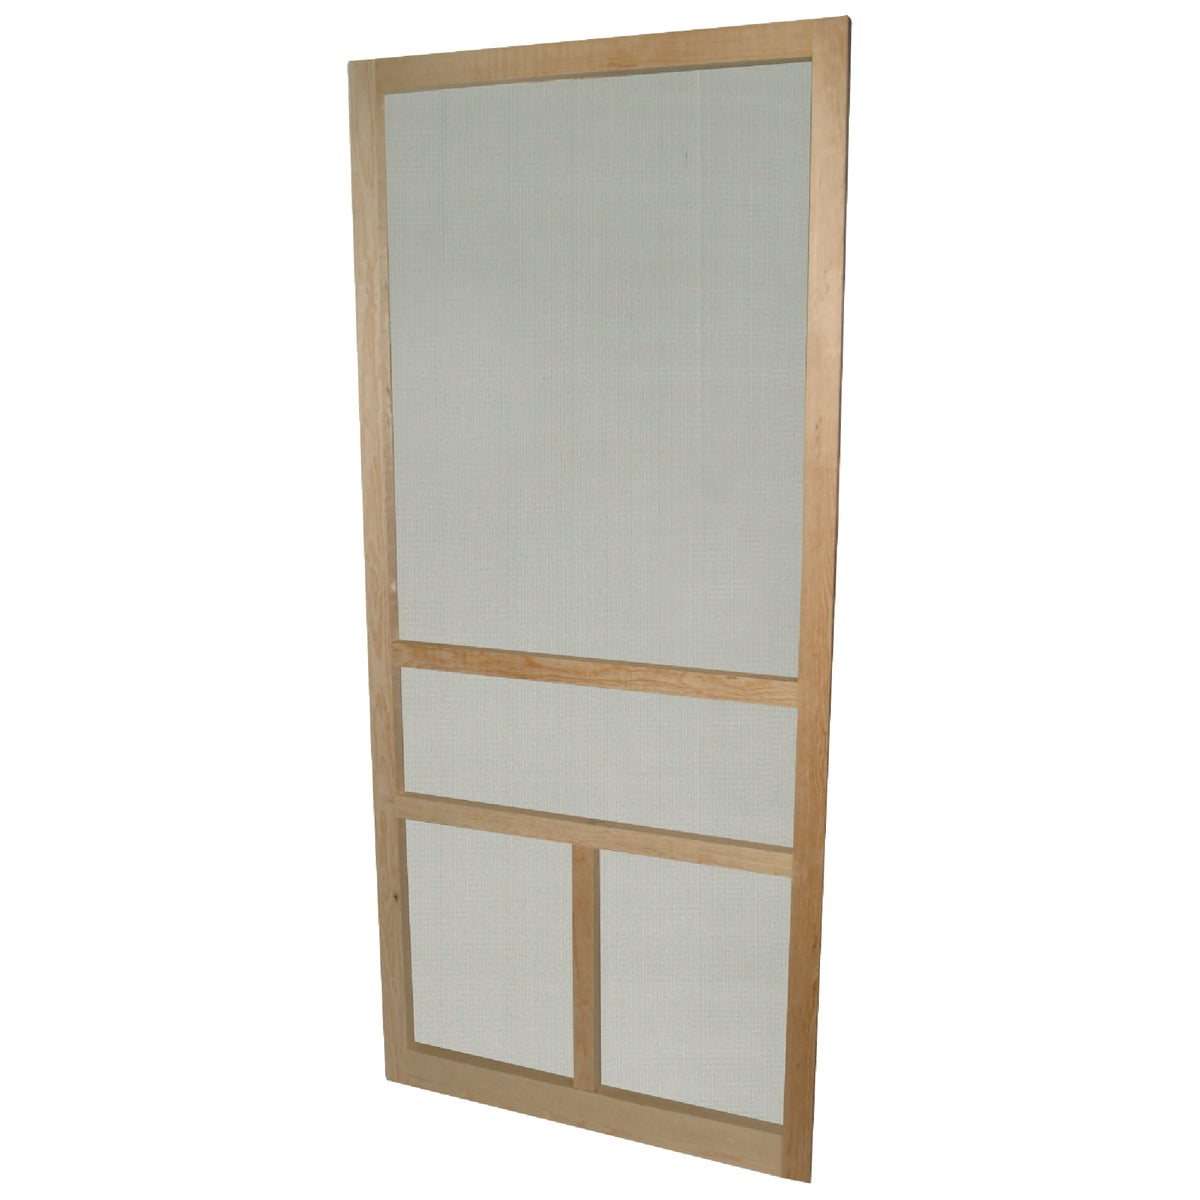 "32"" T-BAR SCREEN DOOR"